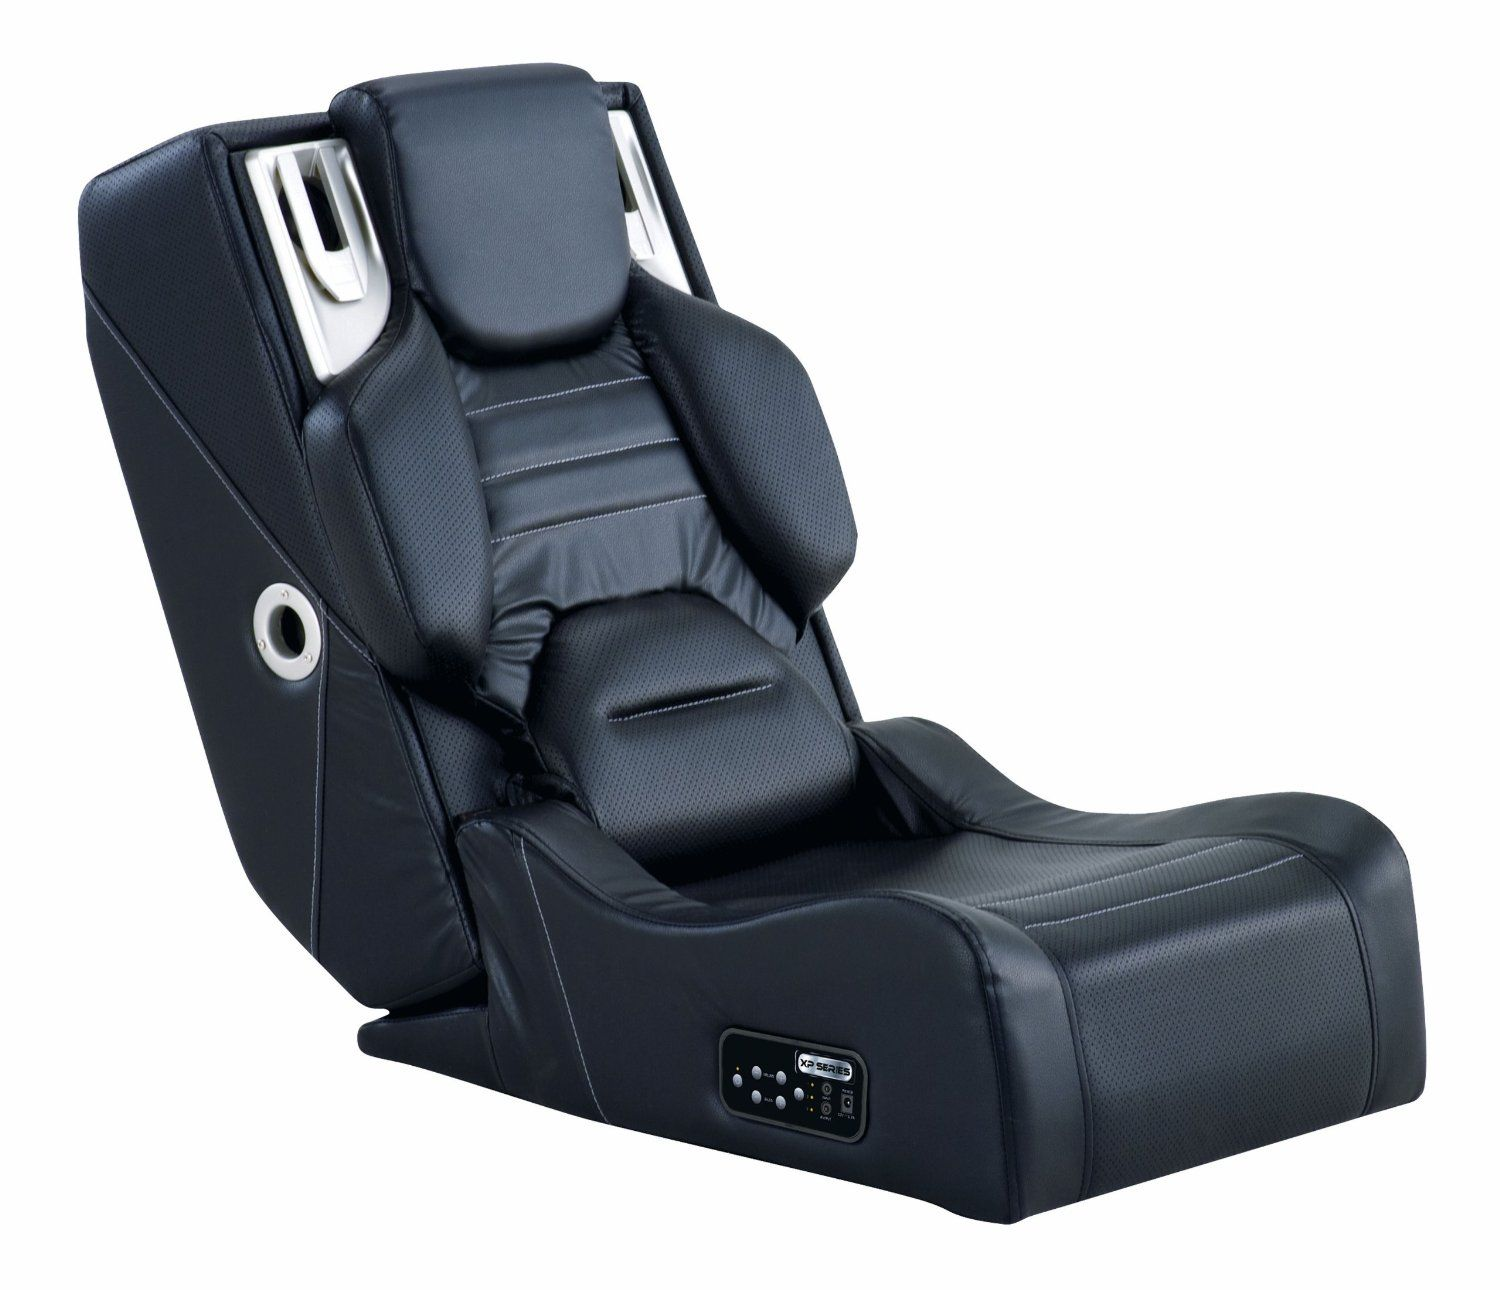 Cohesion XP 2 Gaming Chair Ottoman with Wireless Audio Sports